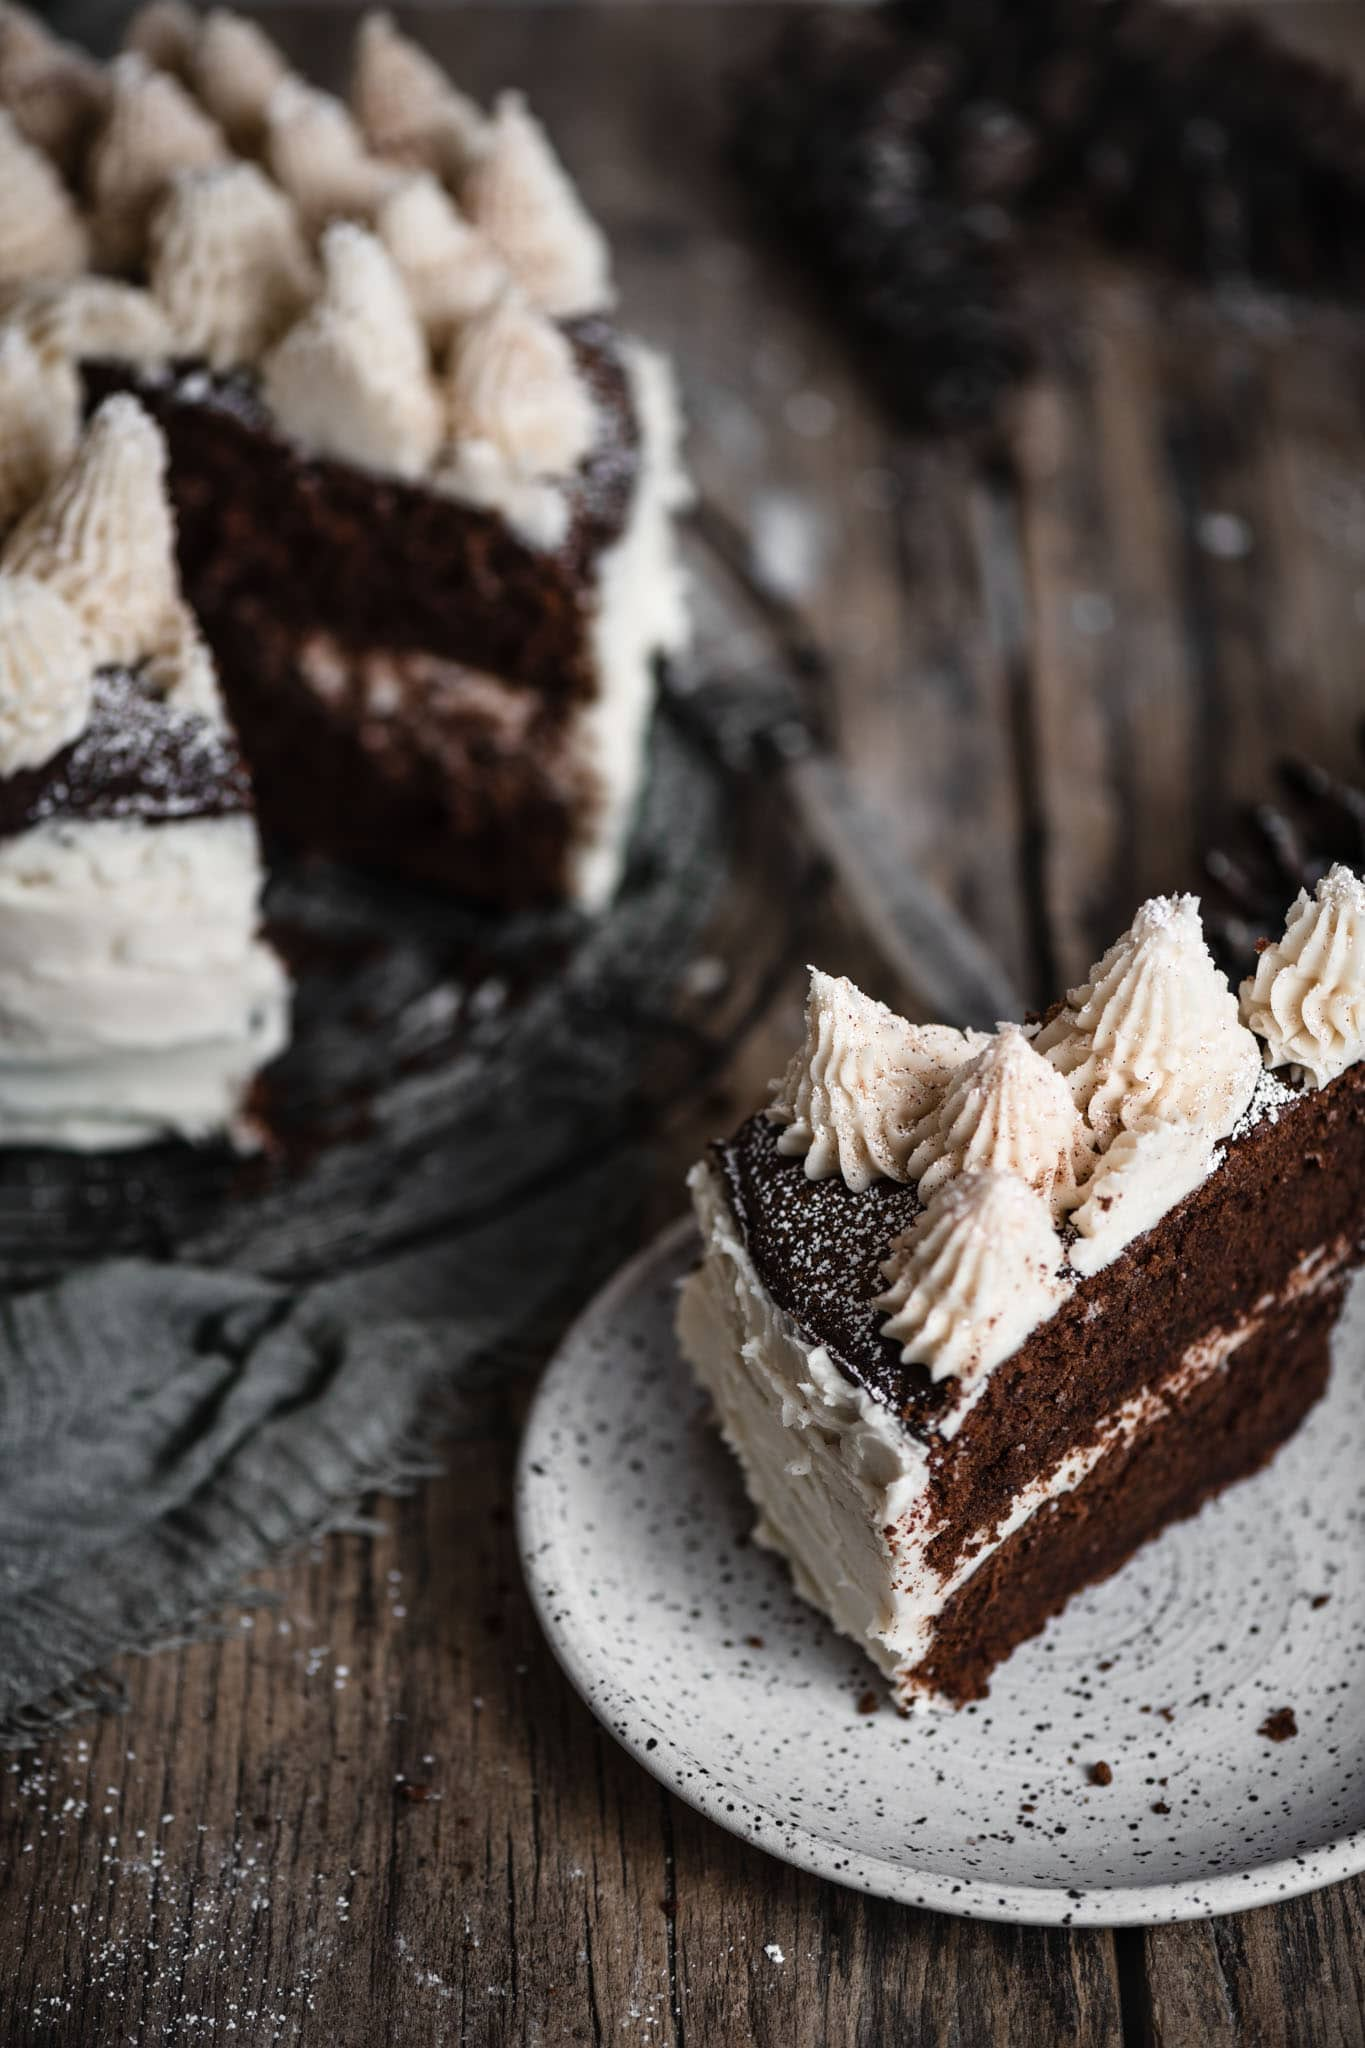 Chocolate torte cake with buttercream frosting.